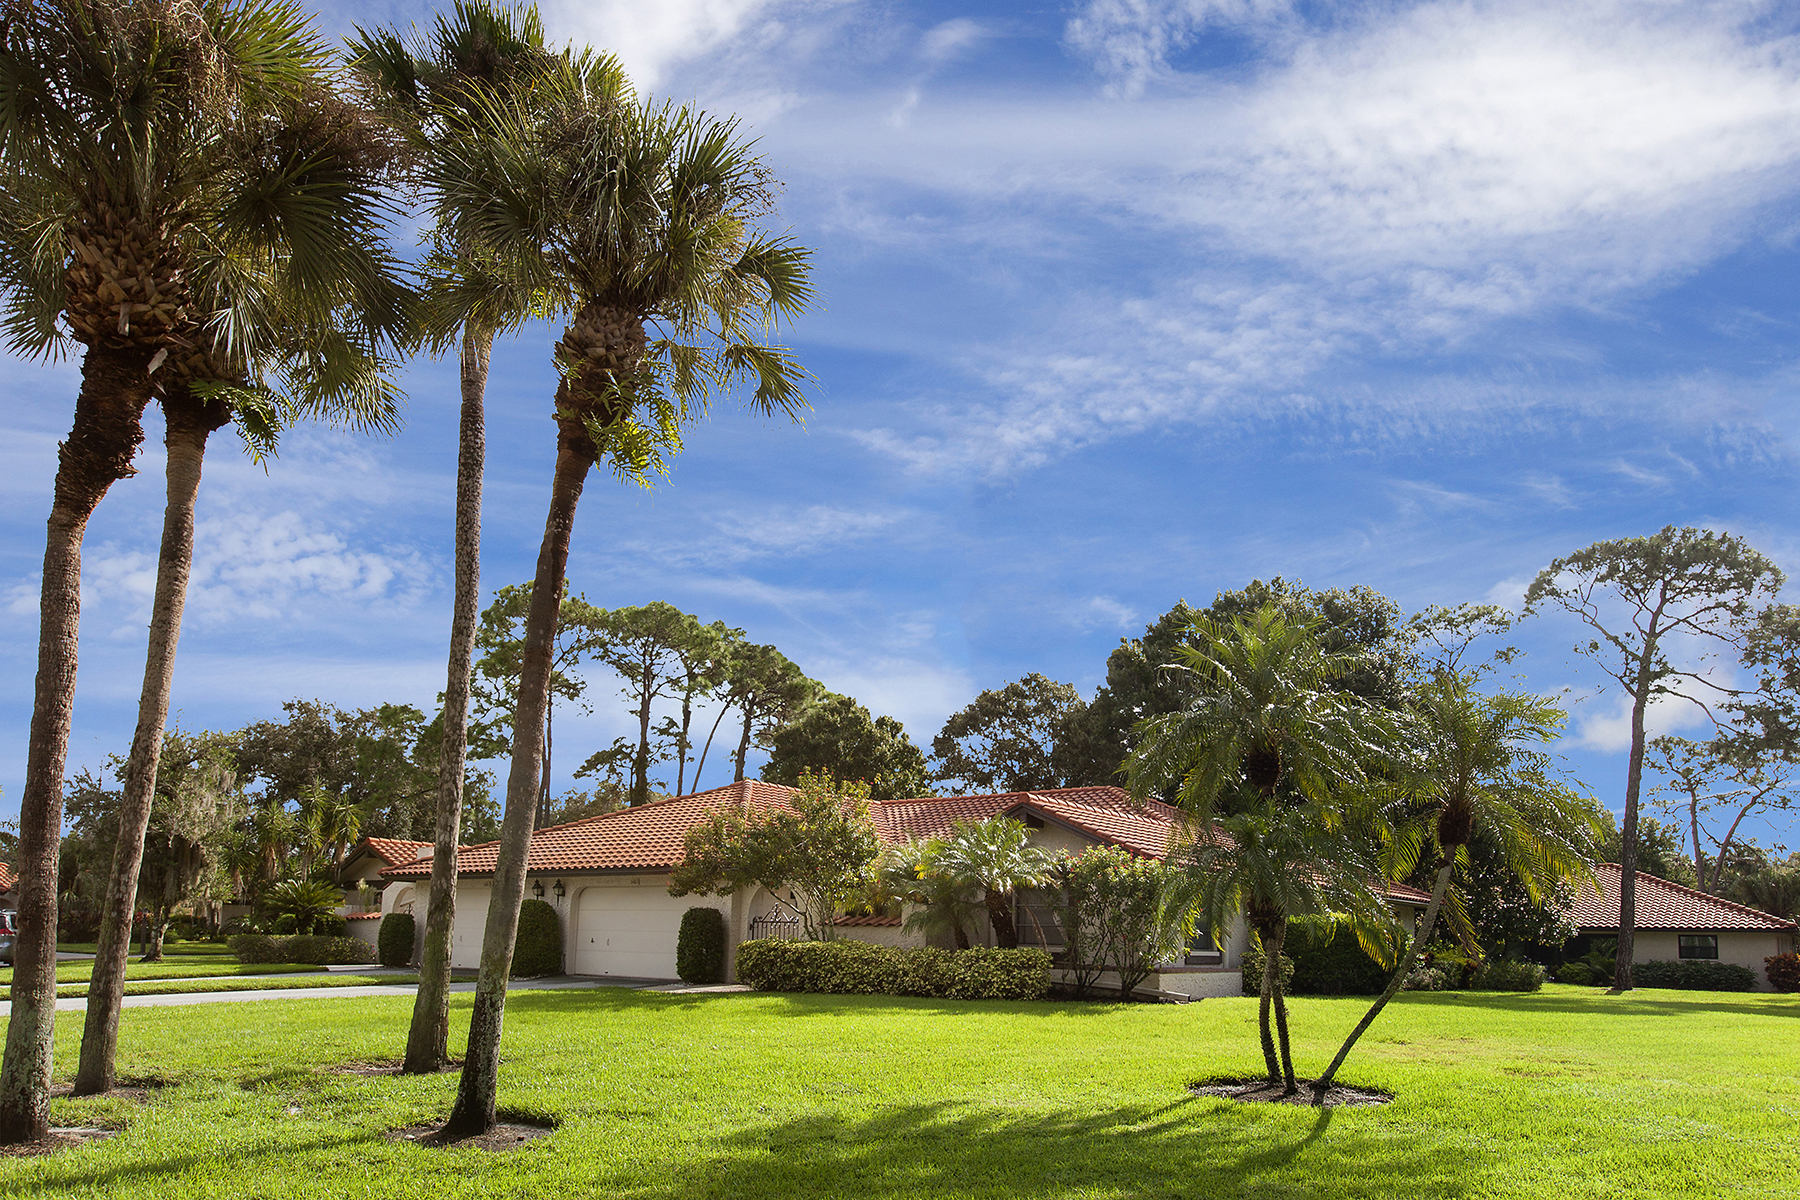 Townhouse for Sale at GOLF POINTE 5489 Golf Pointe Dr Sarasota, Florida, 34243 United States